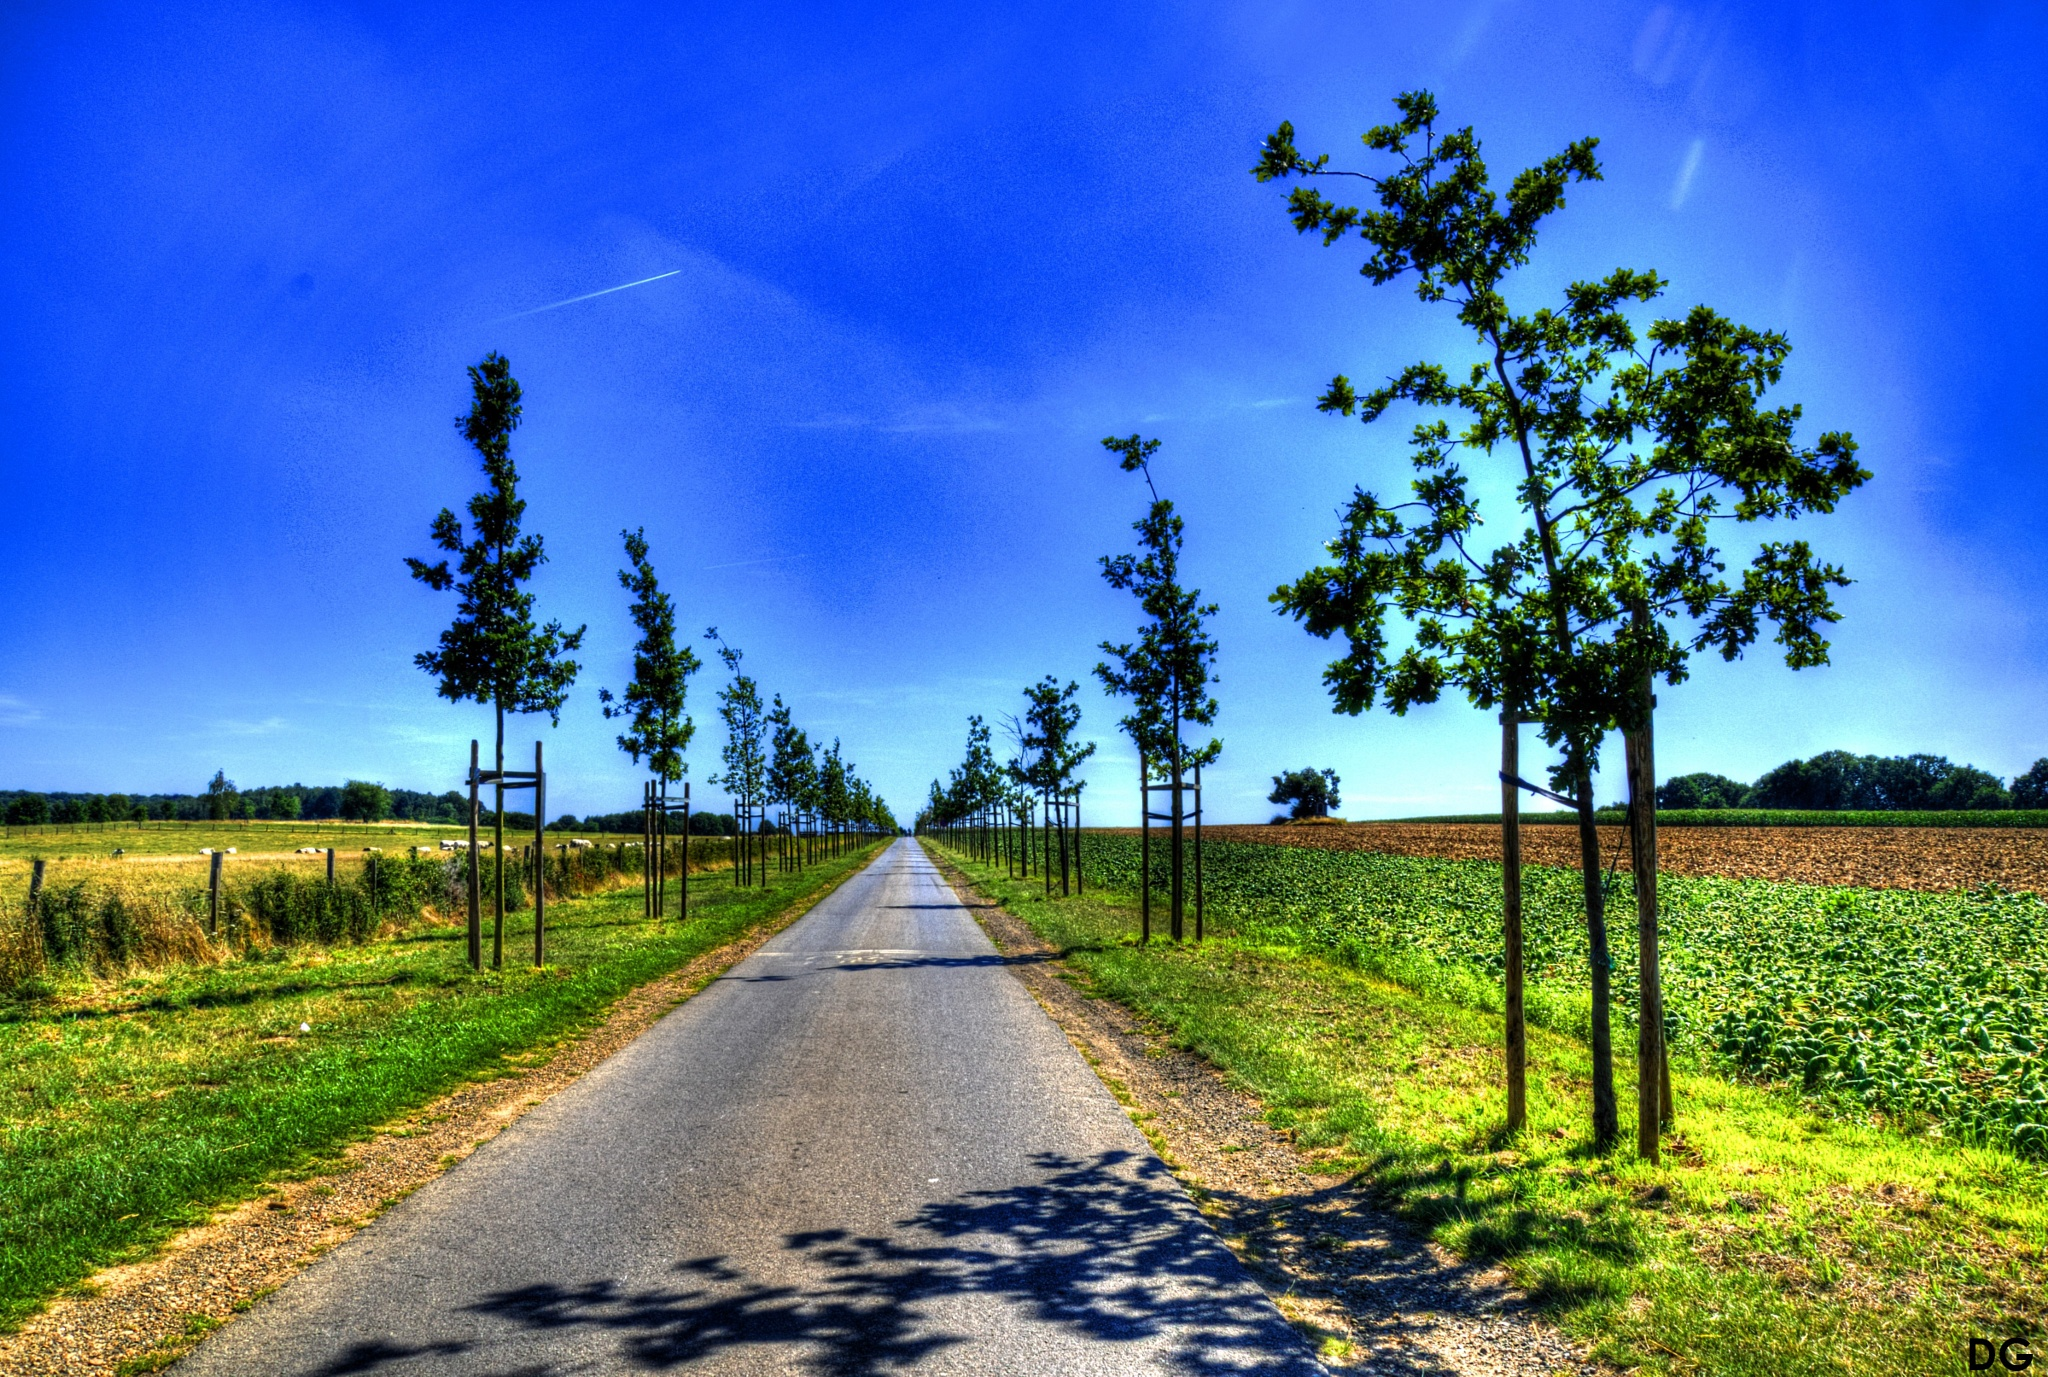 Road IV. by Dirk Gonthier